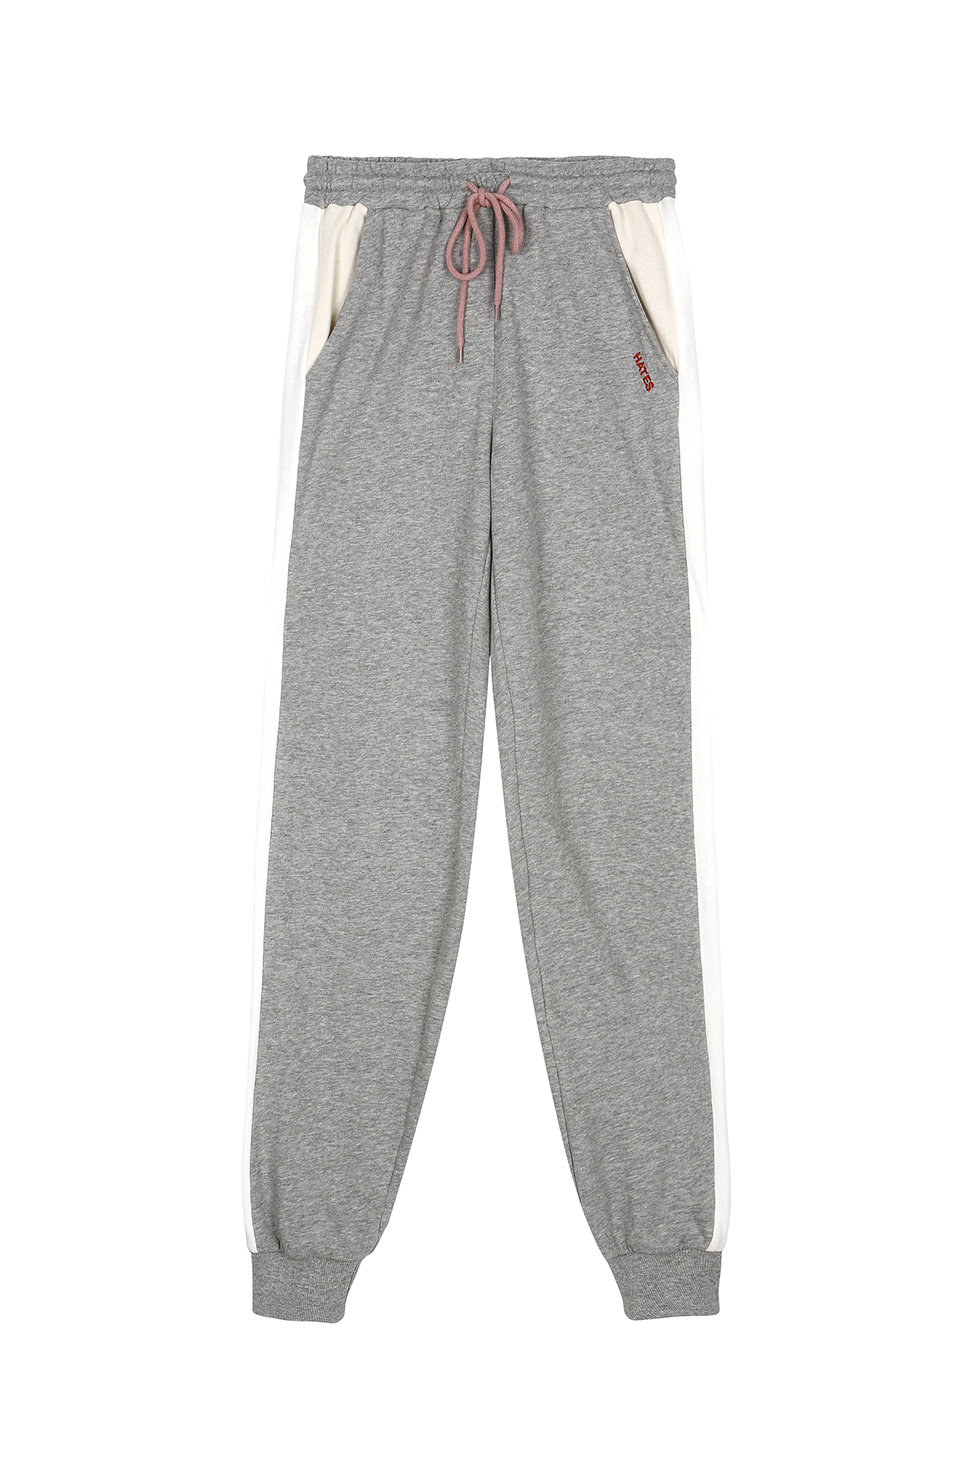 HATES JERSEY PANTS - GREY